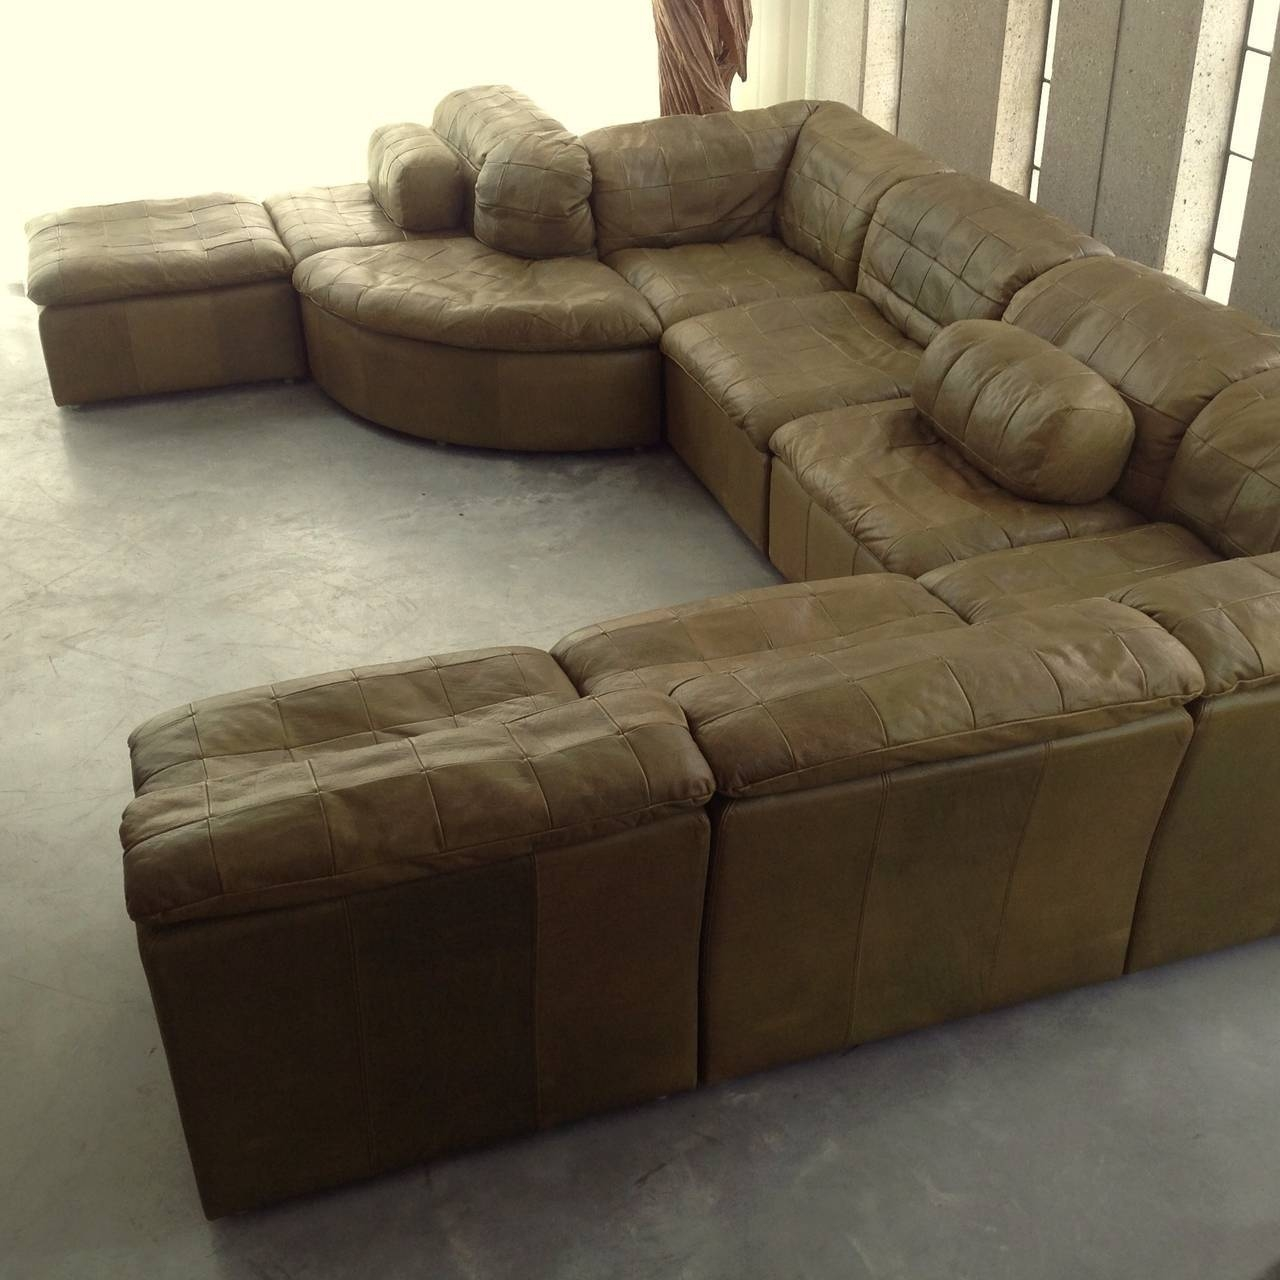 Fancy Green Leather Sofa 36 On Sofas And Couches Ideas With Green with Green Leather Sectional Sofas (Image 3 of 15)